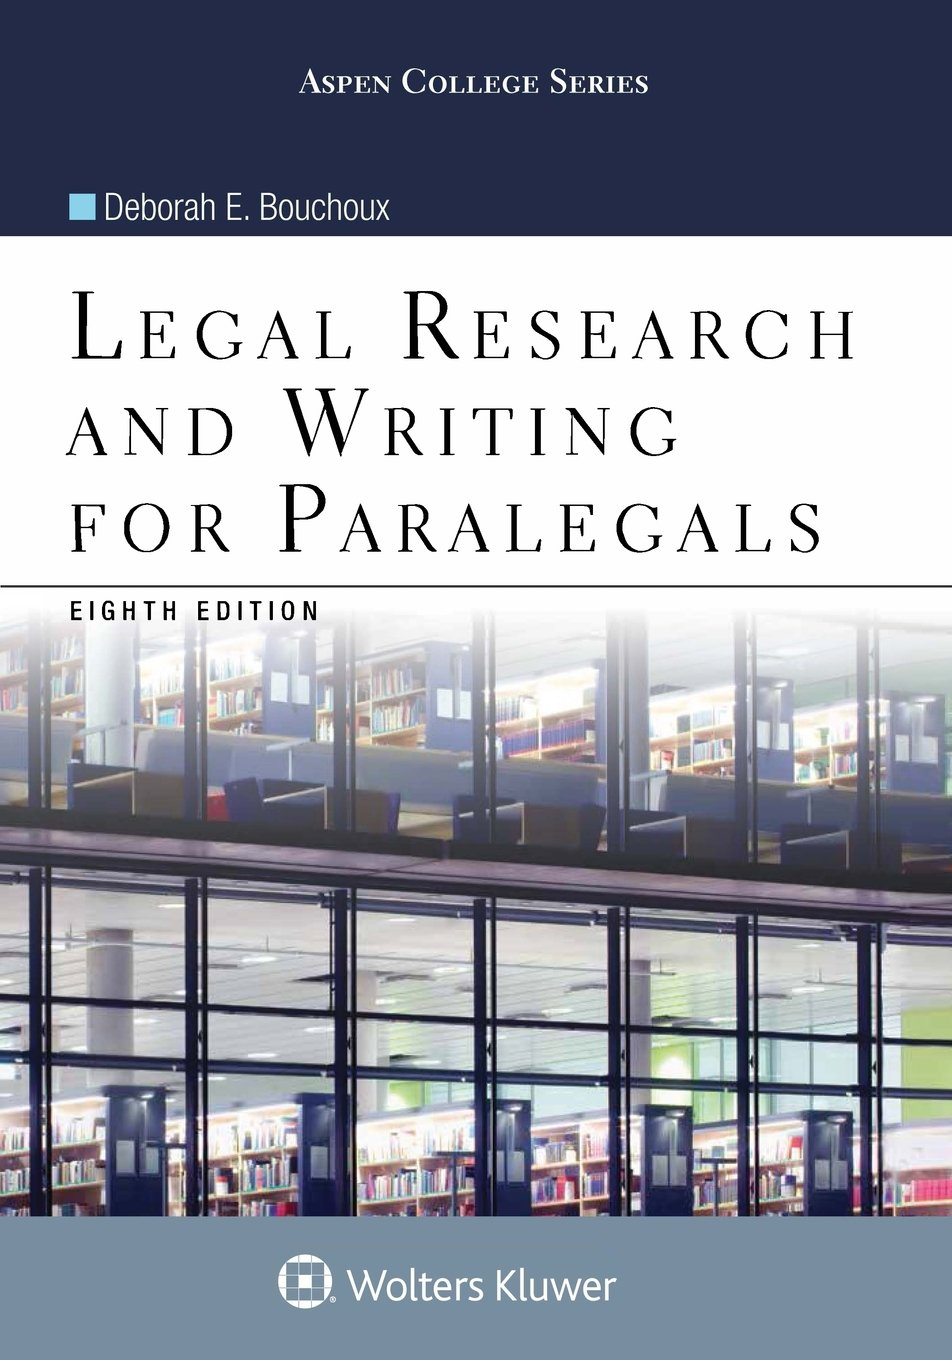 Legal Research and Writing for Paralegals (Aspen College) by Wolters Kluwer